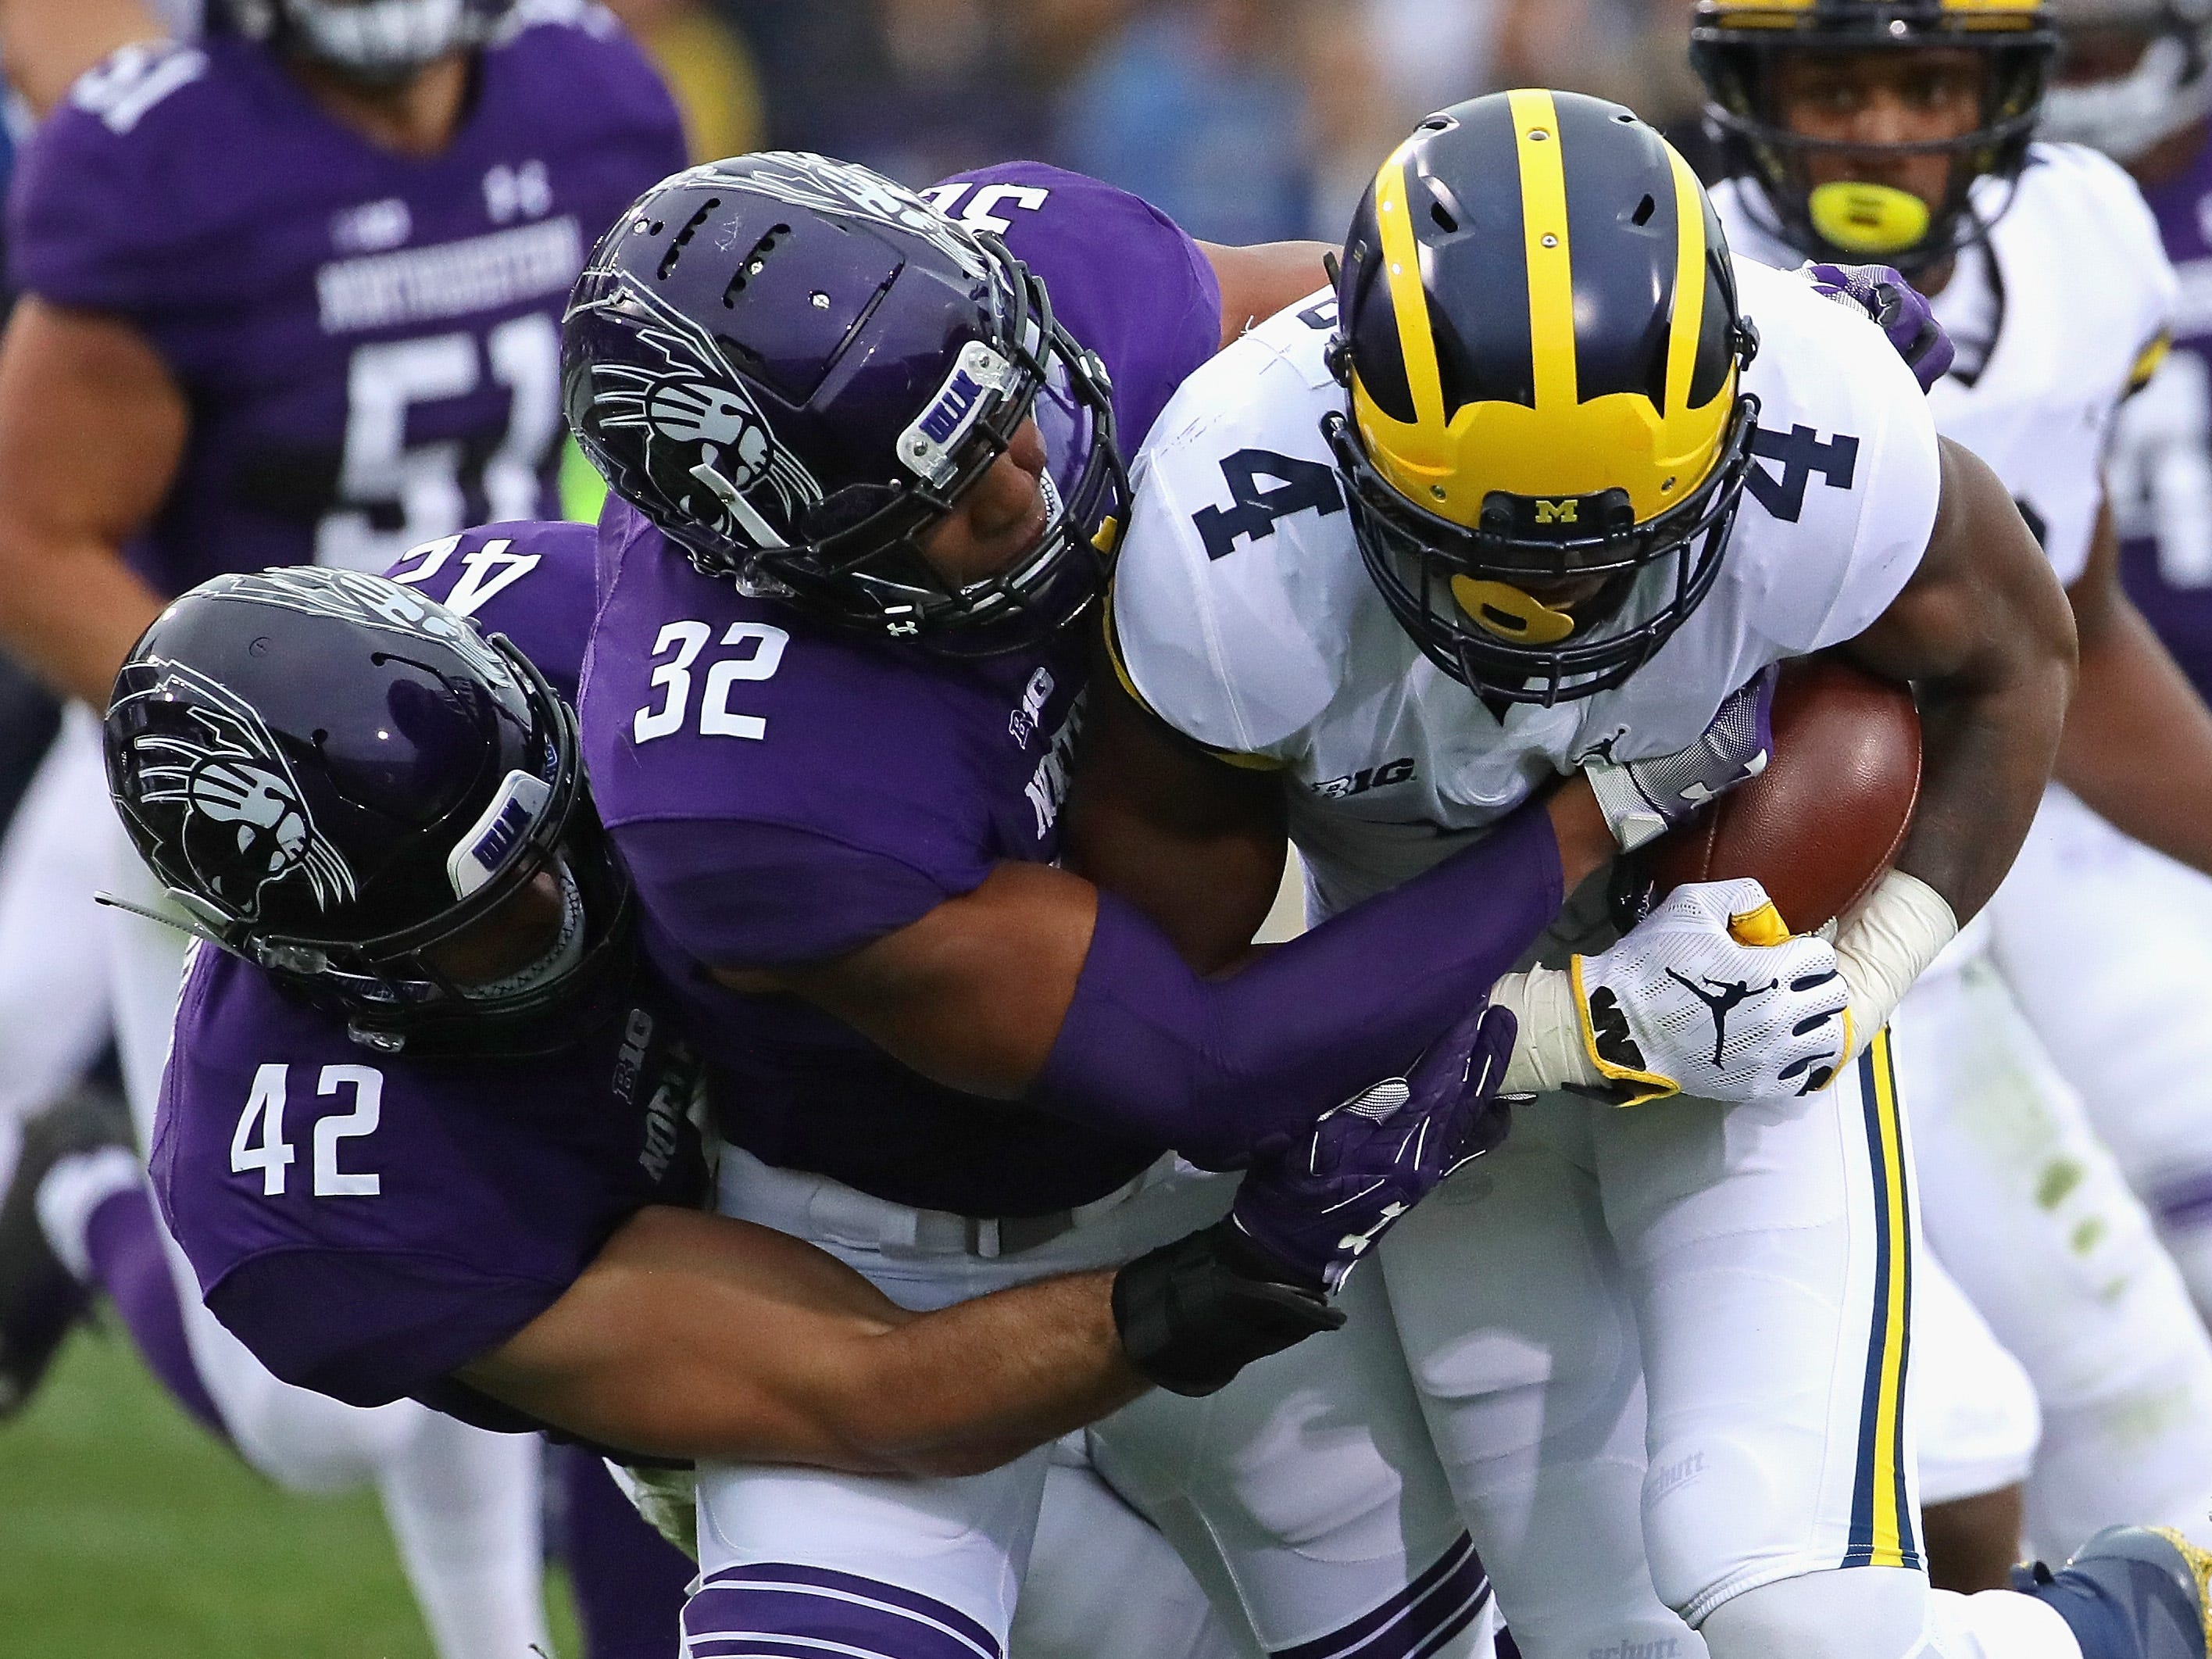 Northwestern's Paddy Fisher (42) and Nate Hall (32) tackle Michigan's Nico Collins at Ryan Field on Sept. 29, 2018 in Evanston, Ill.